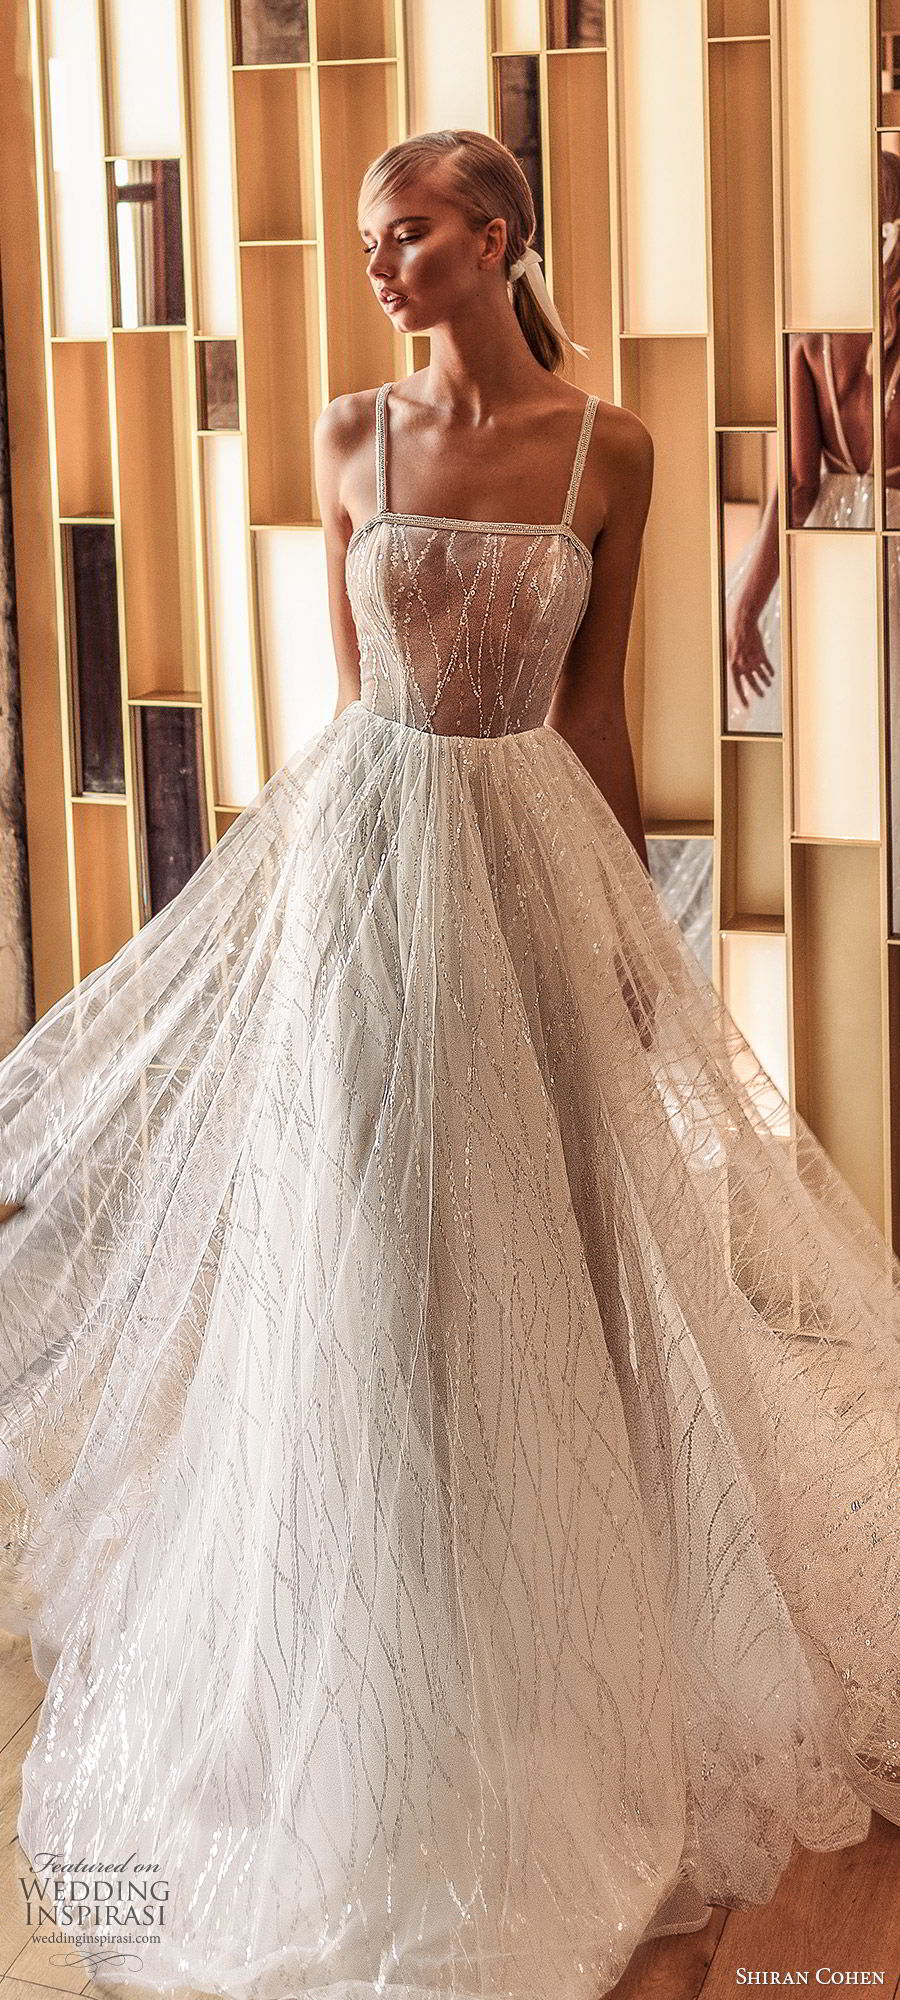 shiran cohen 2019 bridal sleeveless beaded straps fully embellished a line ball gown wedding dress glitzy romantic princess (8) zv